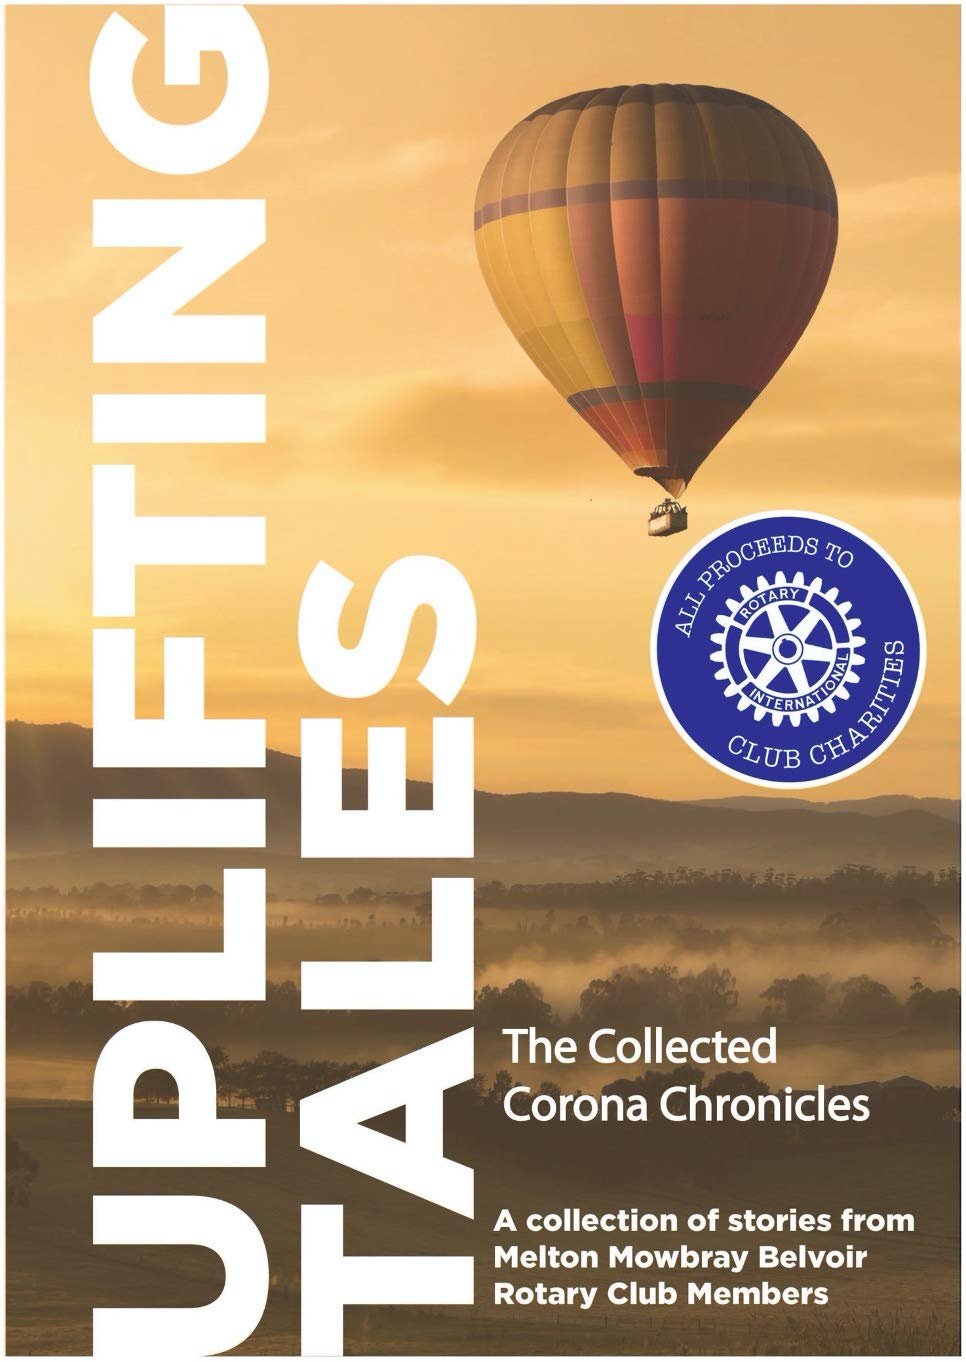 Uplifting Tales: A collection of stories and writings from the members of Melton Mowbray Belvoir Rotary Club